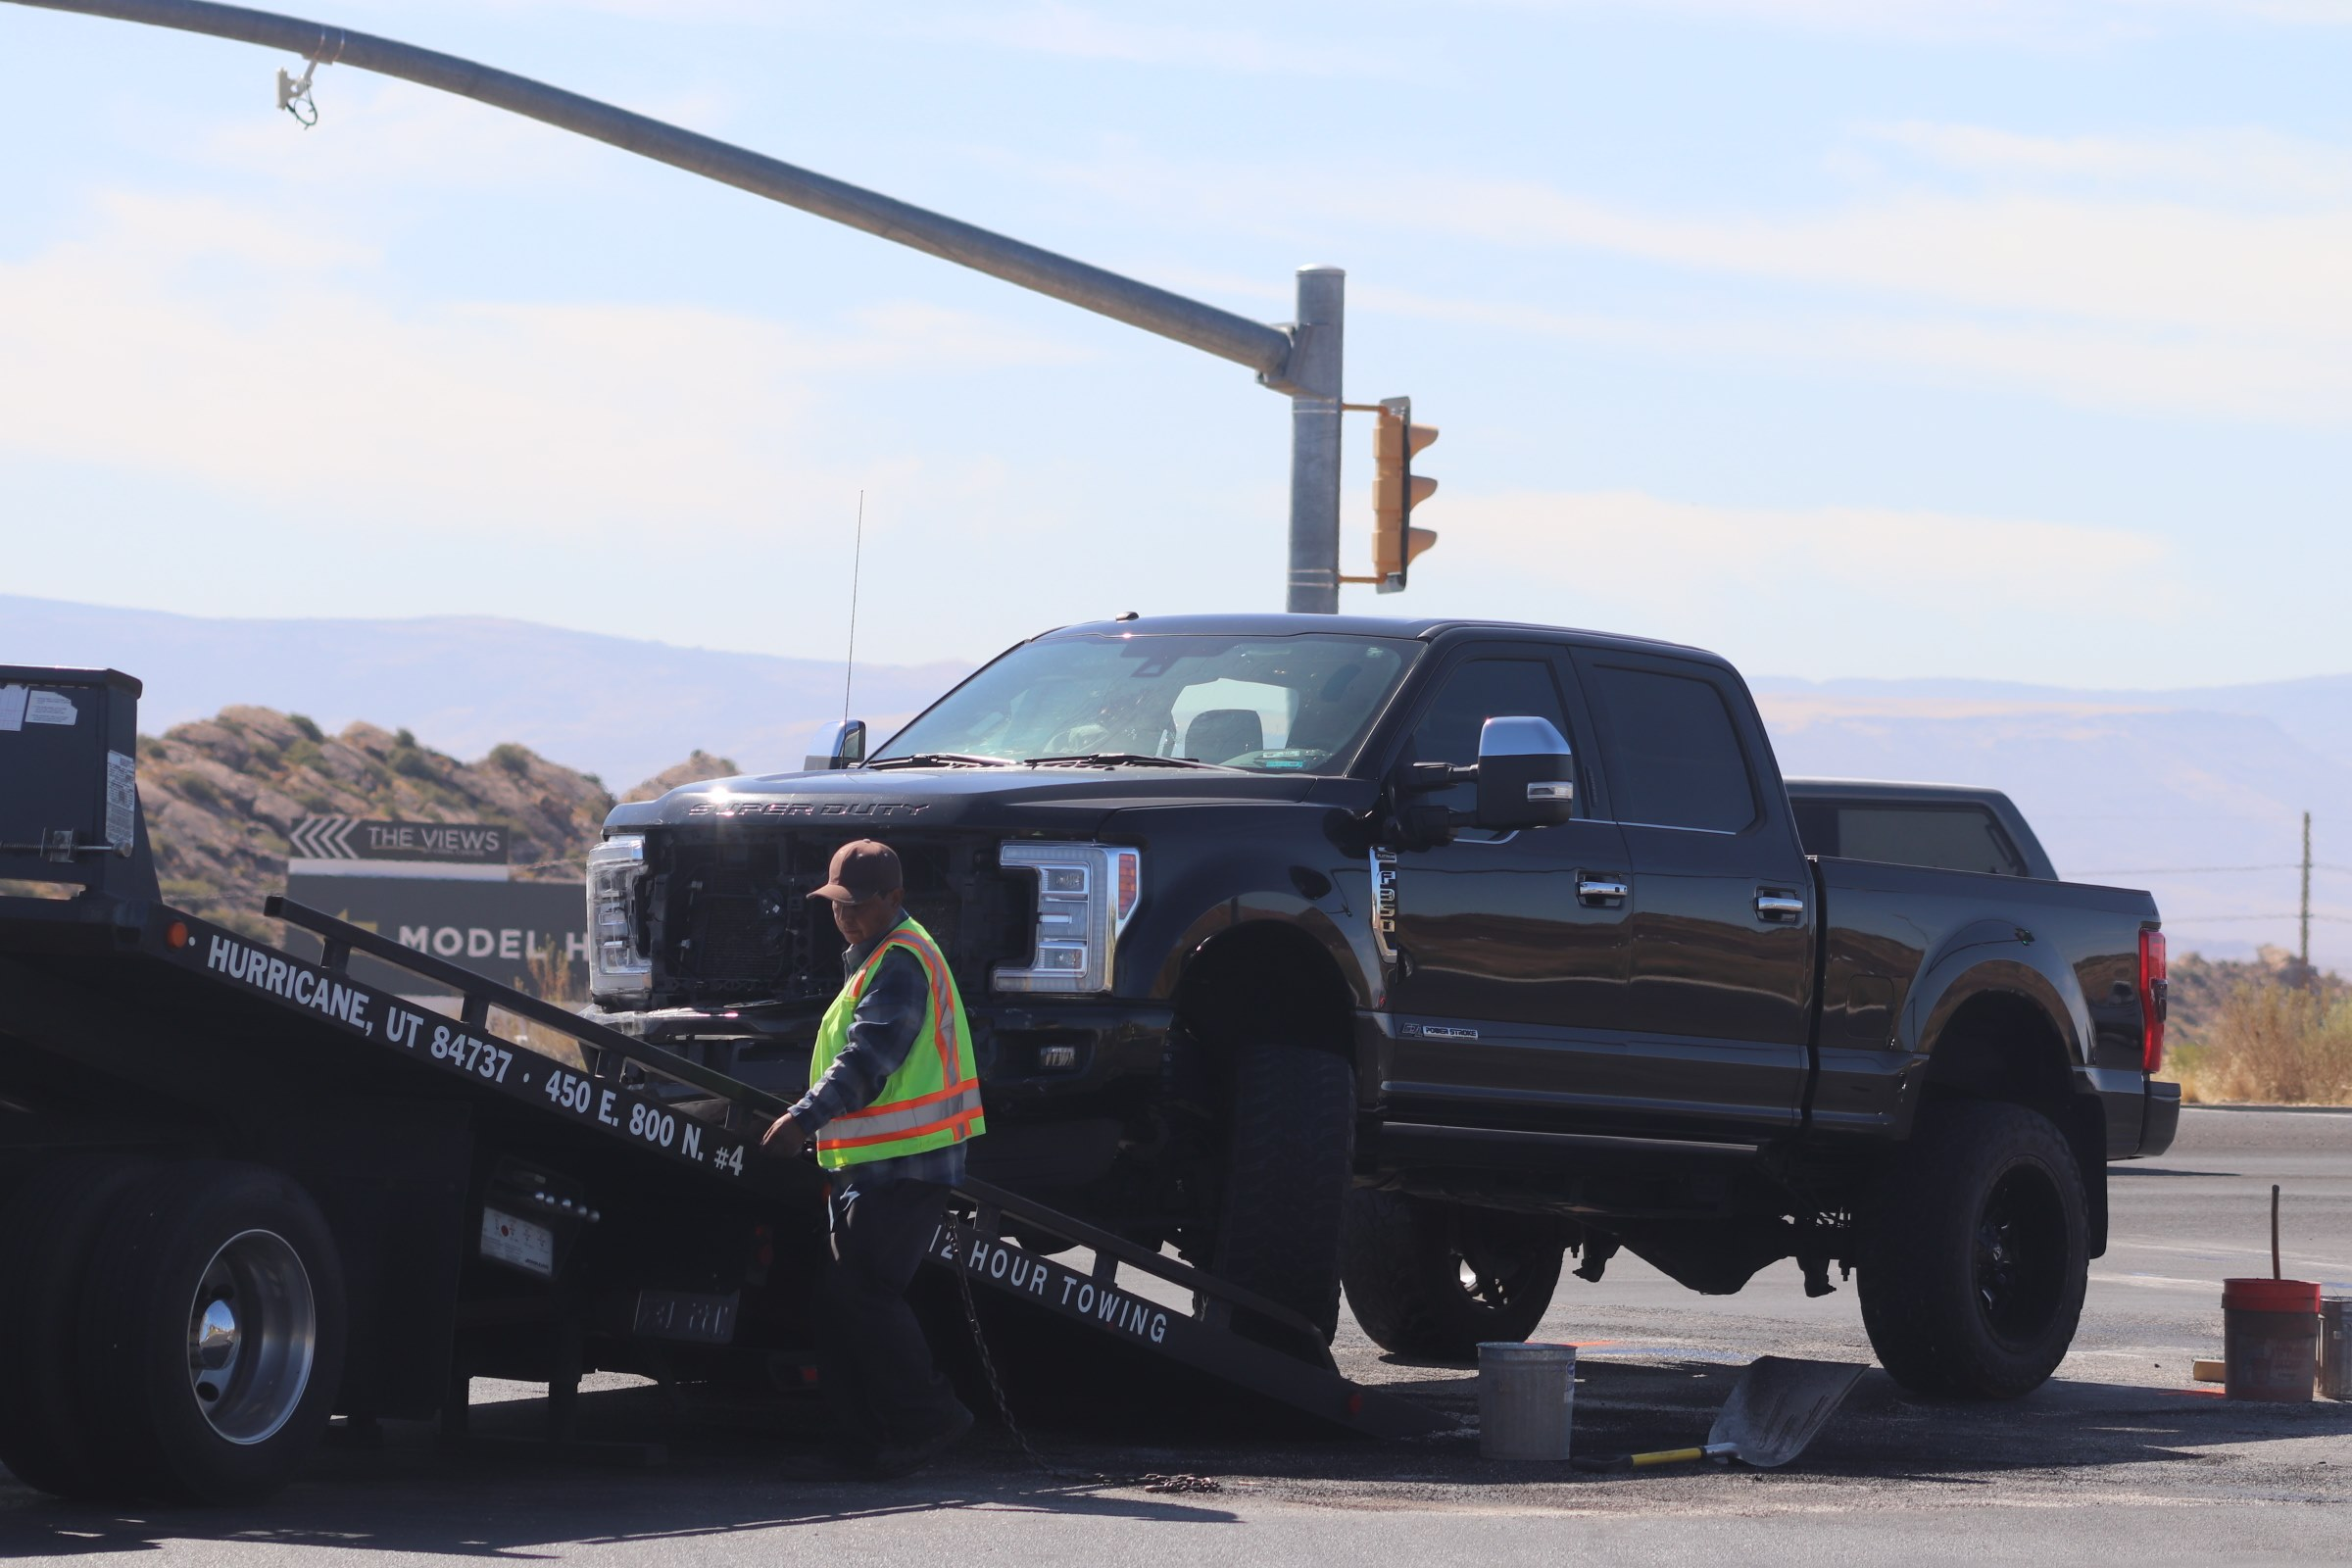 Driver facing automobile homicide charge following fatal crash held without bail following 2 new DUI cases – St George News